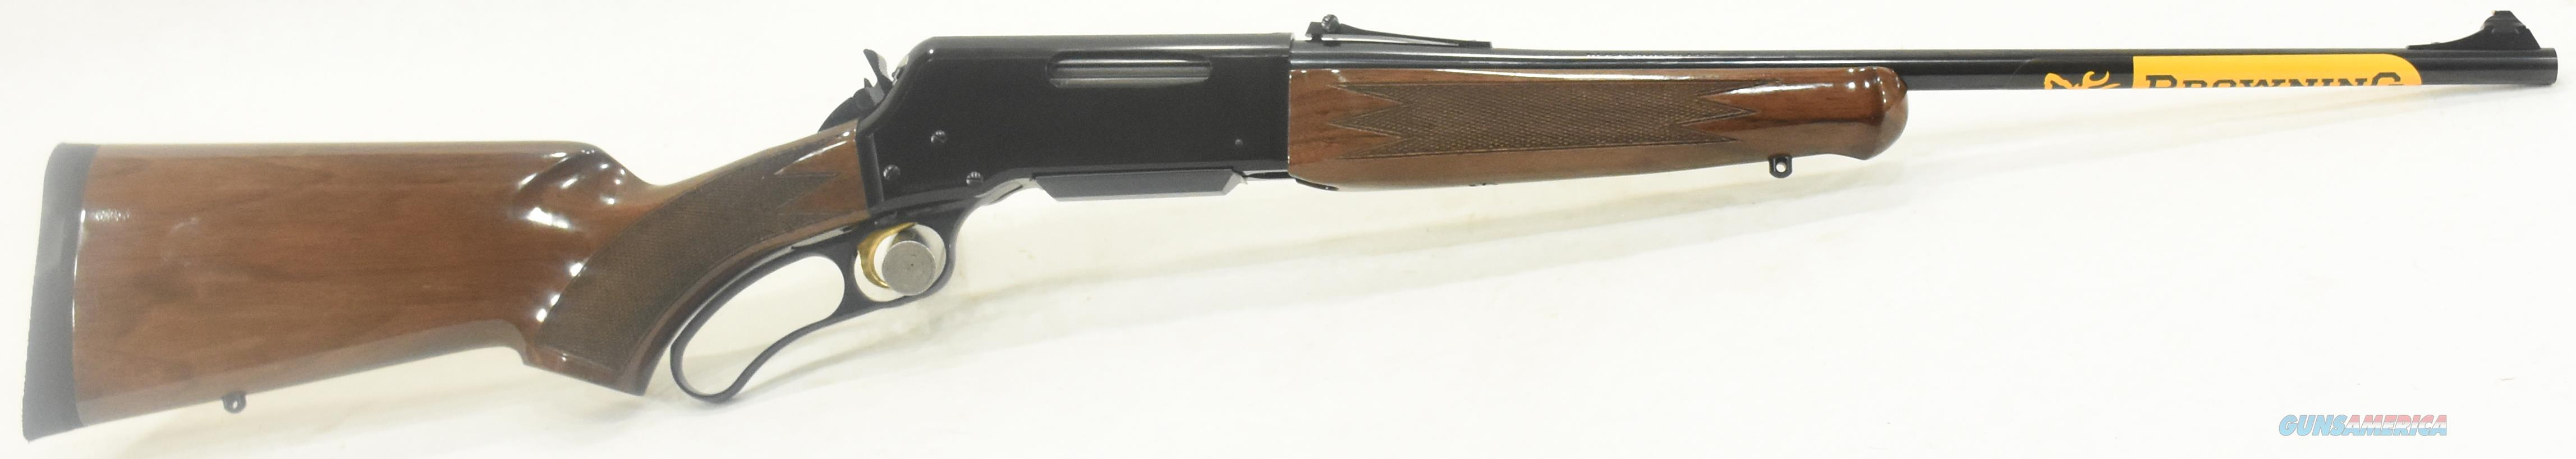 BL-22 Walnut Grade II 22LR 24In 024105155  Guns > Rifles > Browning Rifles > Semi Auto > Hunting